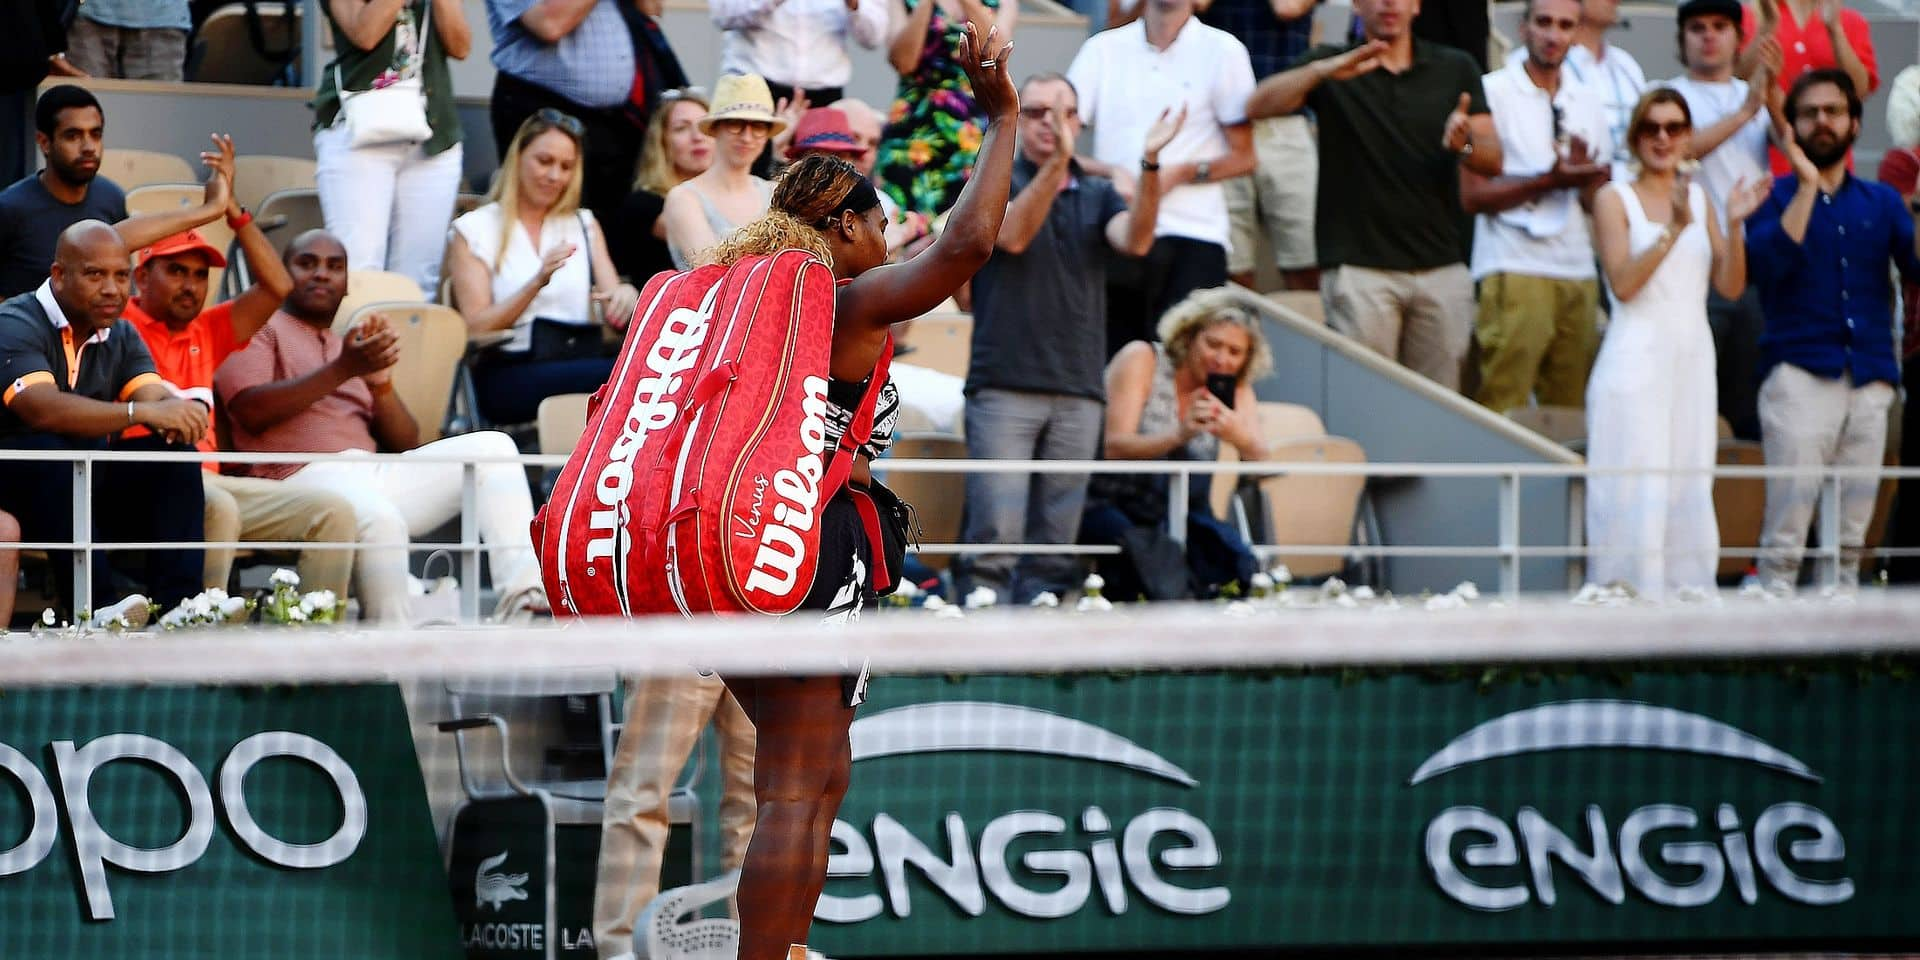 Serena Williams of the US waves as she leaves the court at the end of her women's singles third round match against Sofia Kenin of the US, on day seven of The Roland Garros 2019 French Open tennis tournament in Paris on June 1, 2019. (Photo by Anne-Christine POUJOULAT / AFP)